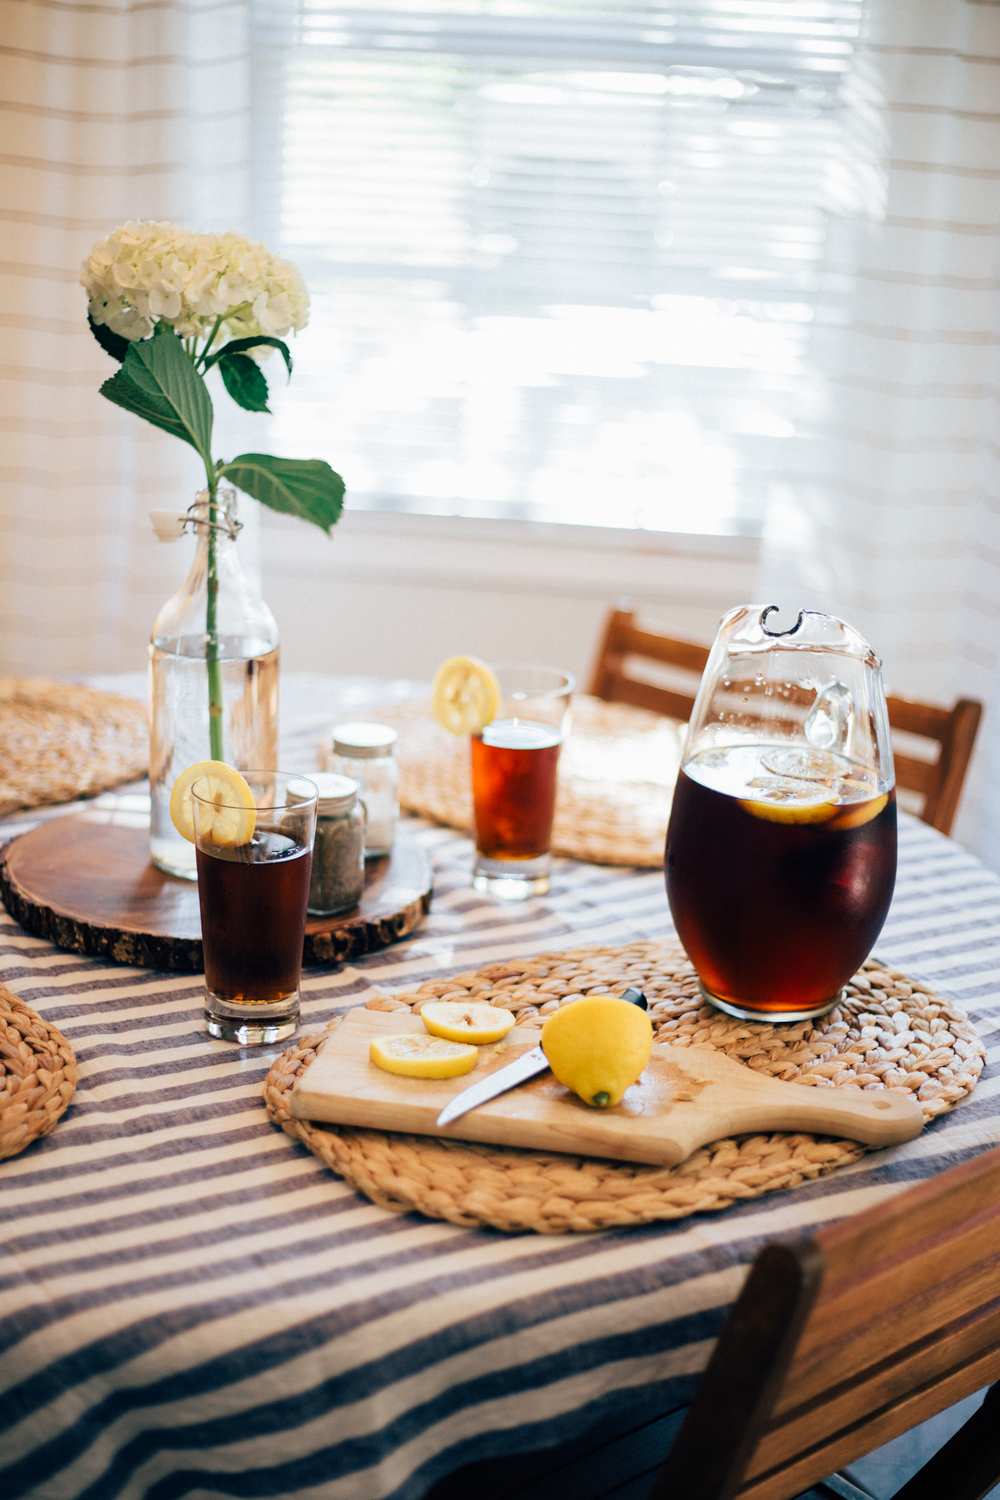 A linen tablecloth, fresh hydrangeas, and lots of sweet tea and lemons make for a perfect lazy summer afternoon.